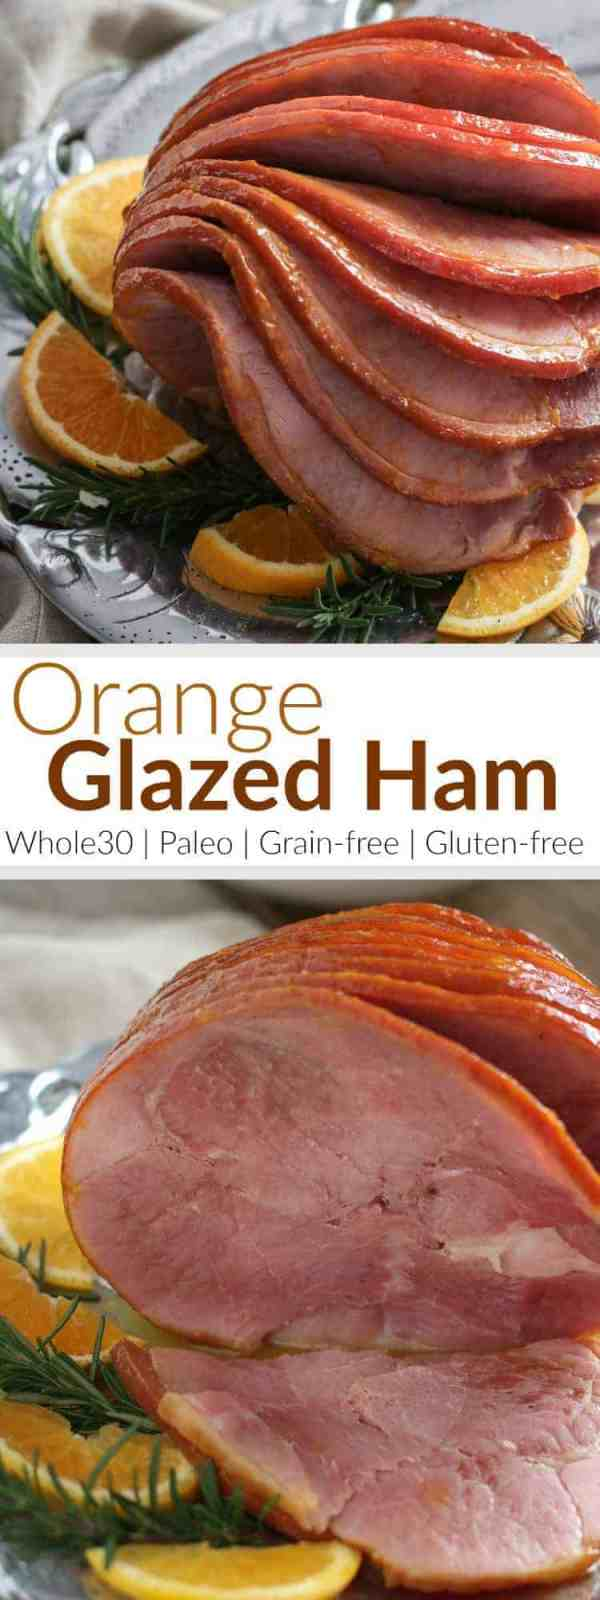 Now you can enjoy perfectly glazed ham without added sugar! Our baked ham with it's simple 4 ingredient orange and spice glaze is easy enough for a casual weekend dinner or meal prep session and elegant enough for holiday feasts | Whole30 | Paleo | therealfoodrds.com